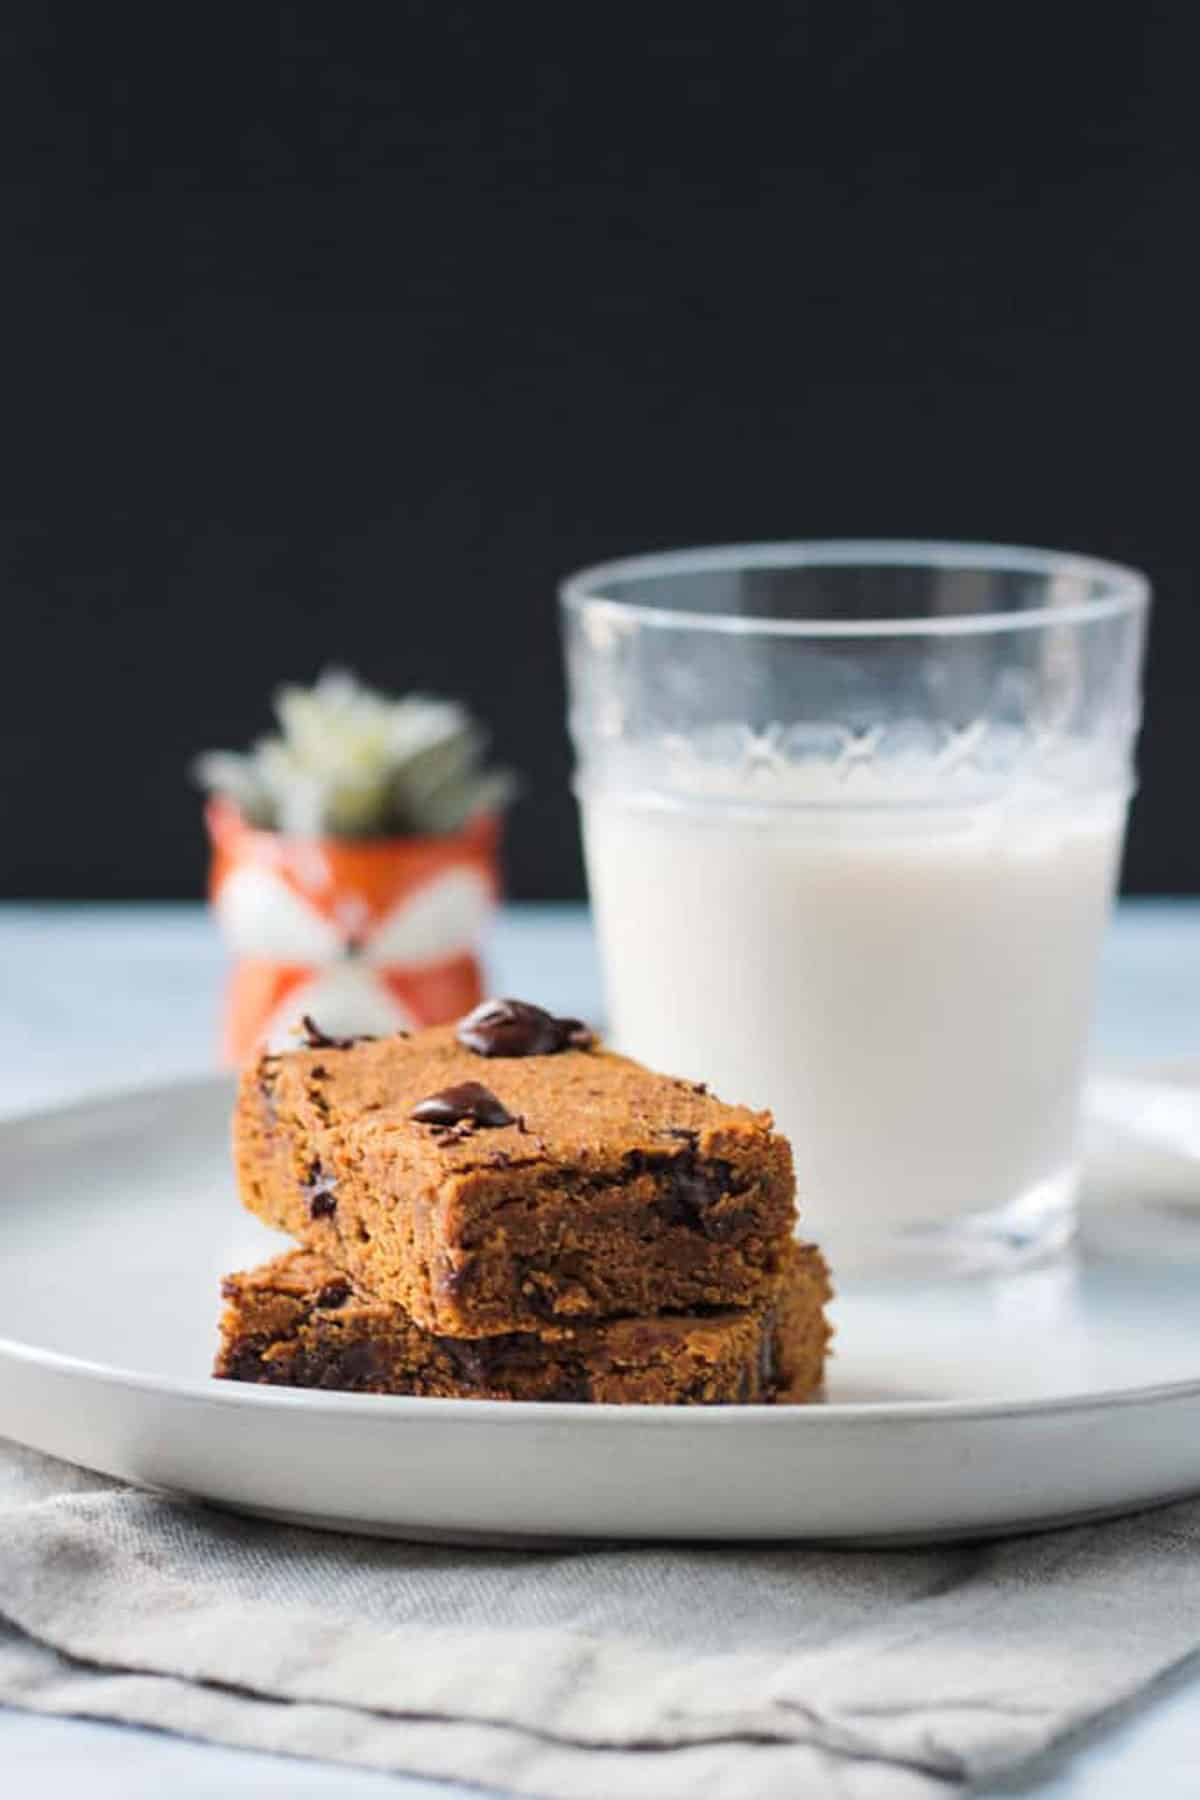 Stack of two pumpkin chocolate chip bars on a plate with a glass of milk.